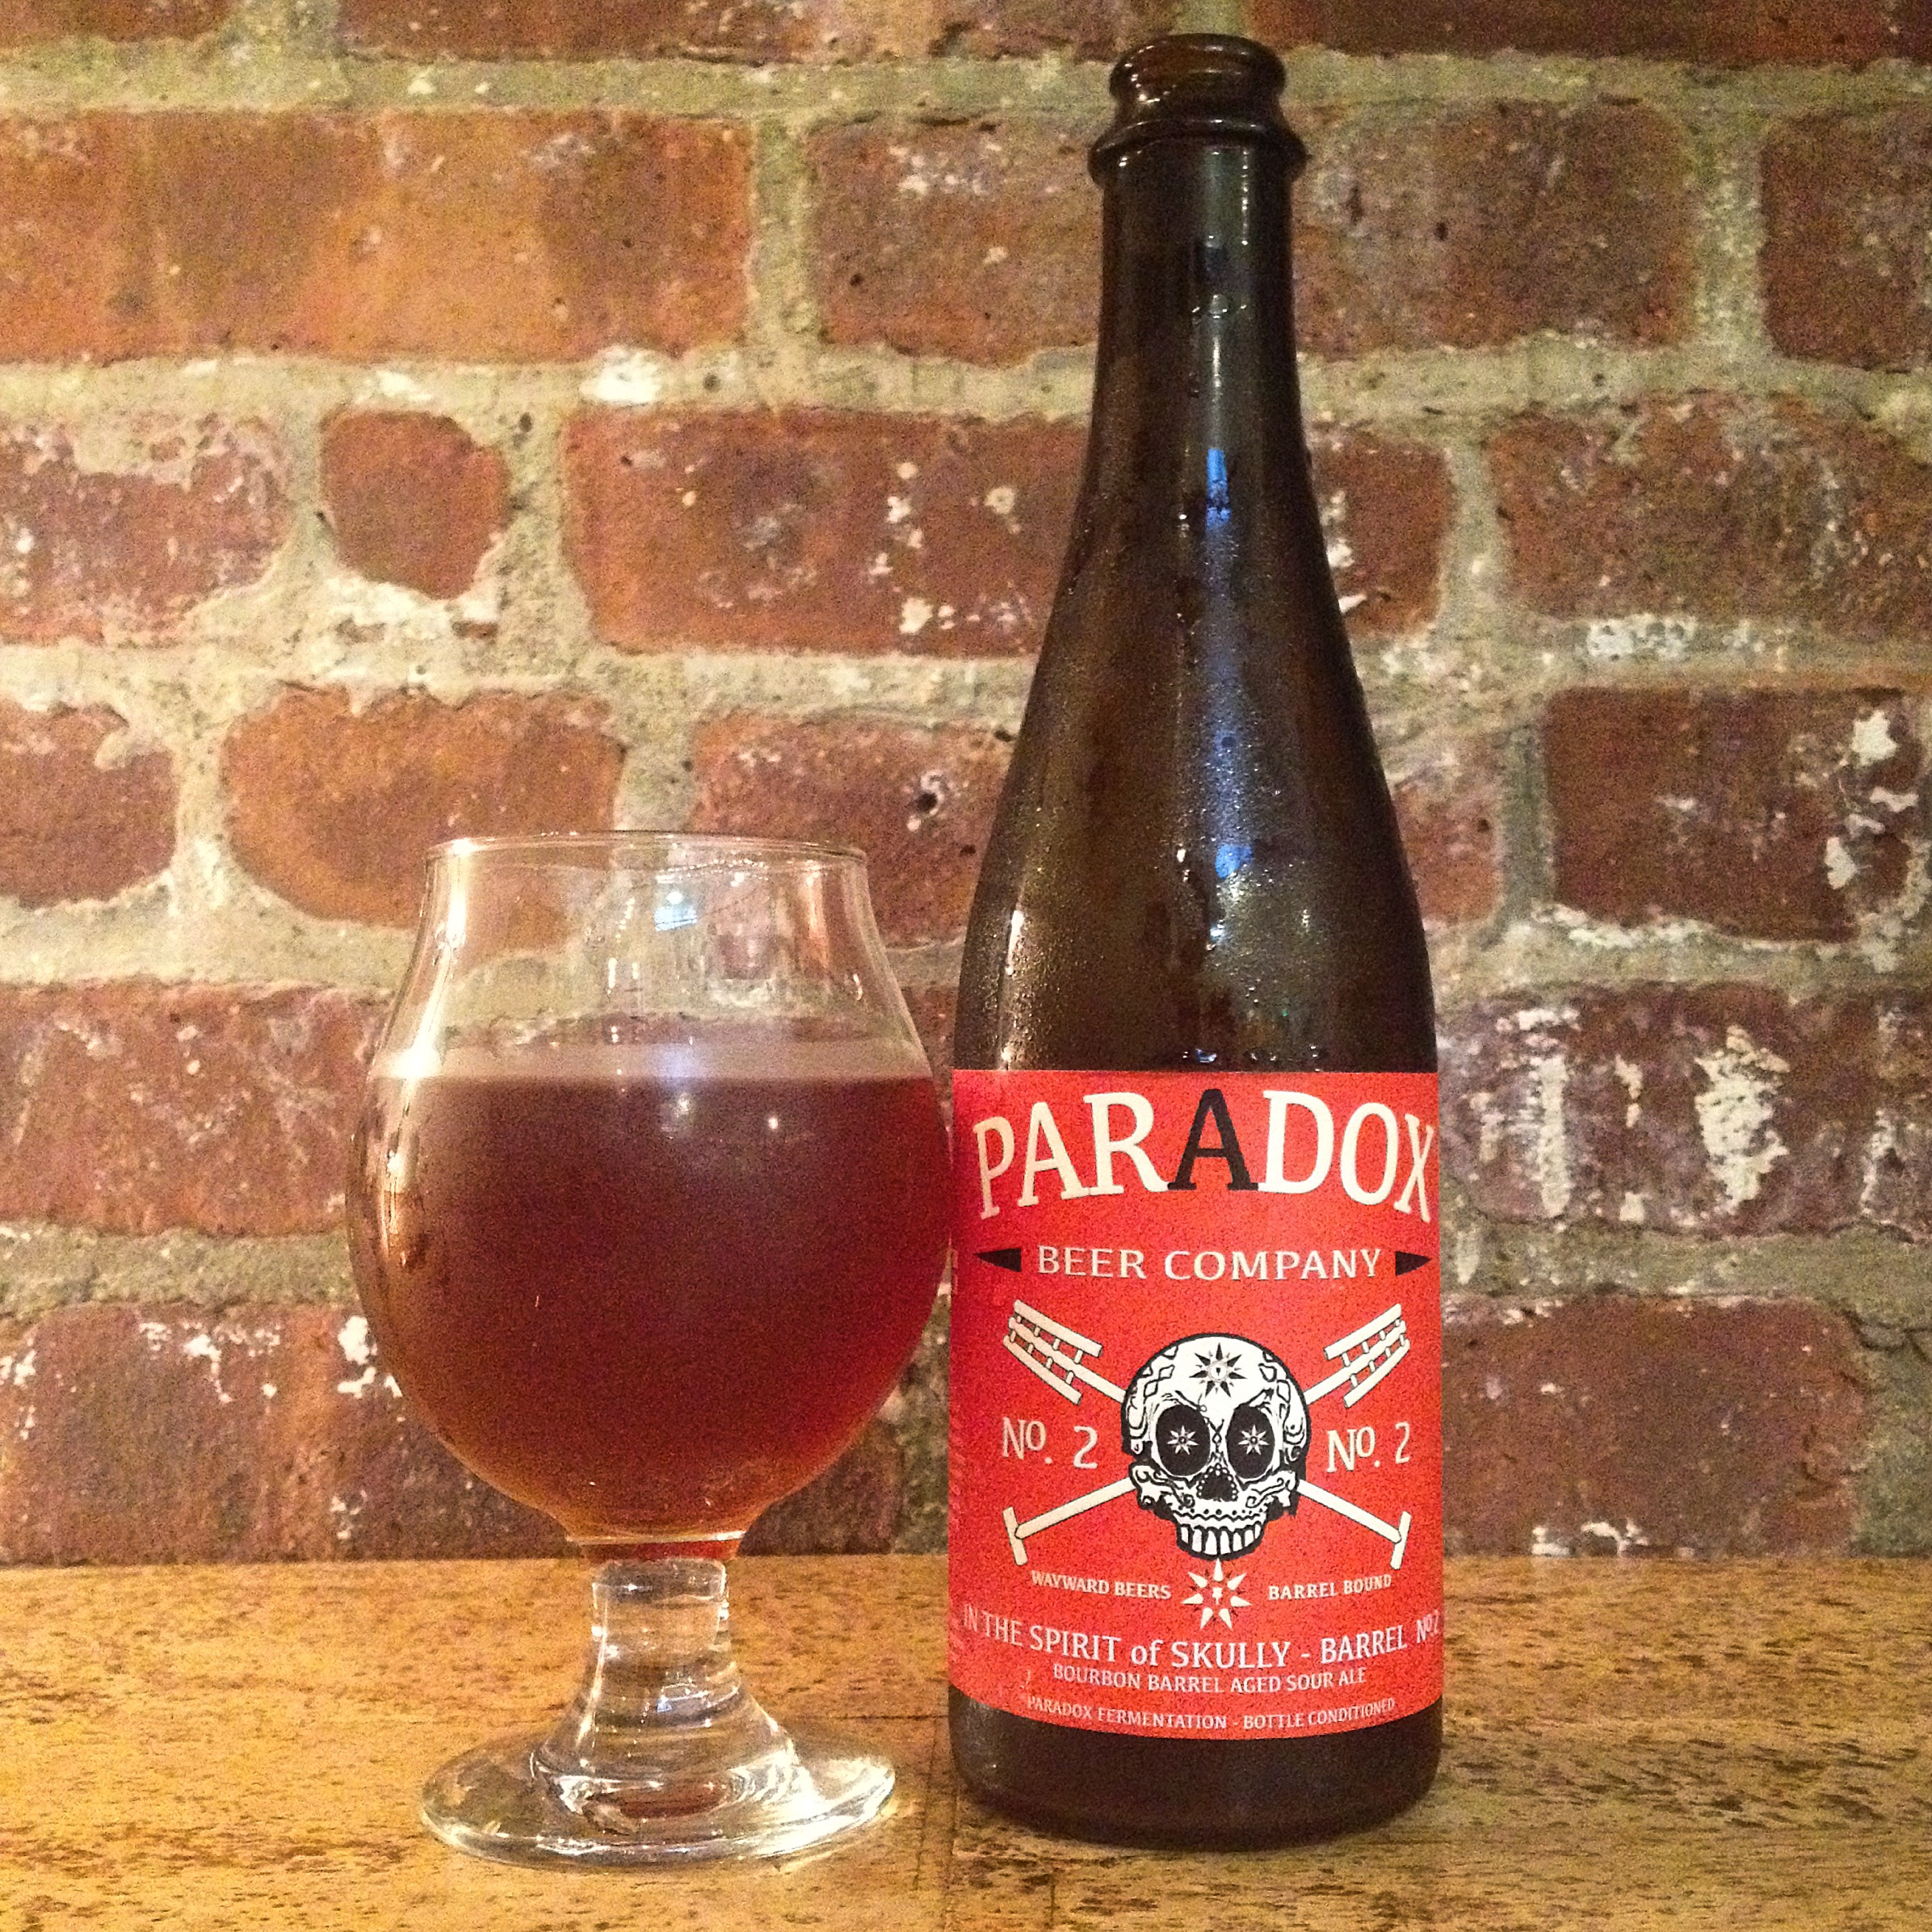 paradox glass bottle company Paradox compass box is a whisky barrel aged imperial stout deep in flavour & high in complexity brewdog's latest wow beer is now in stock at gonzo.